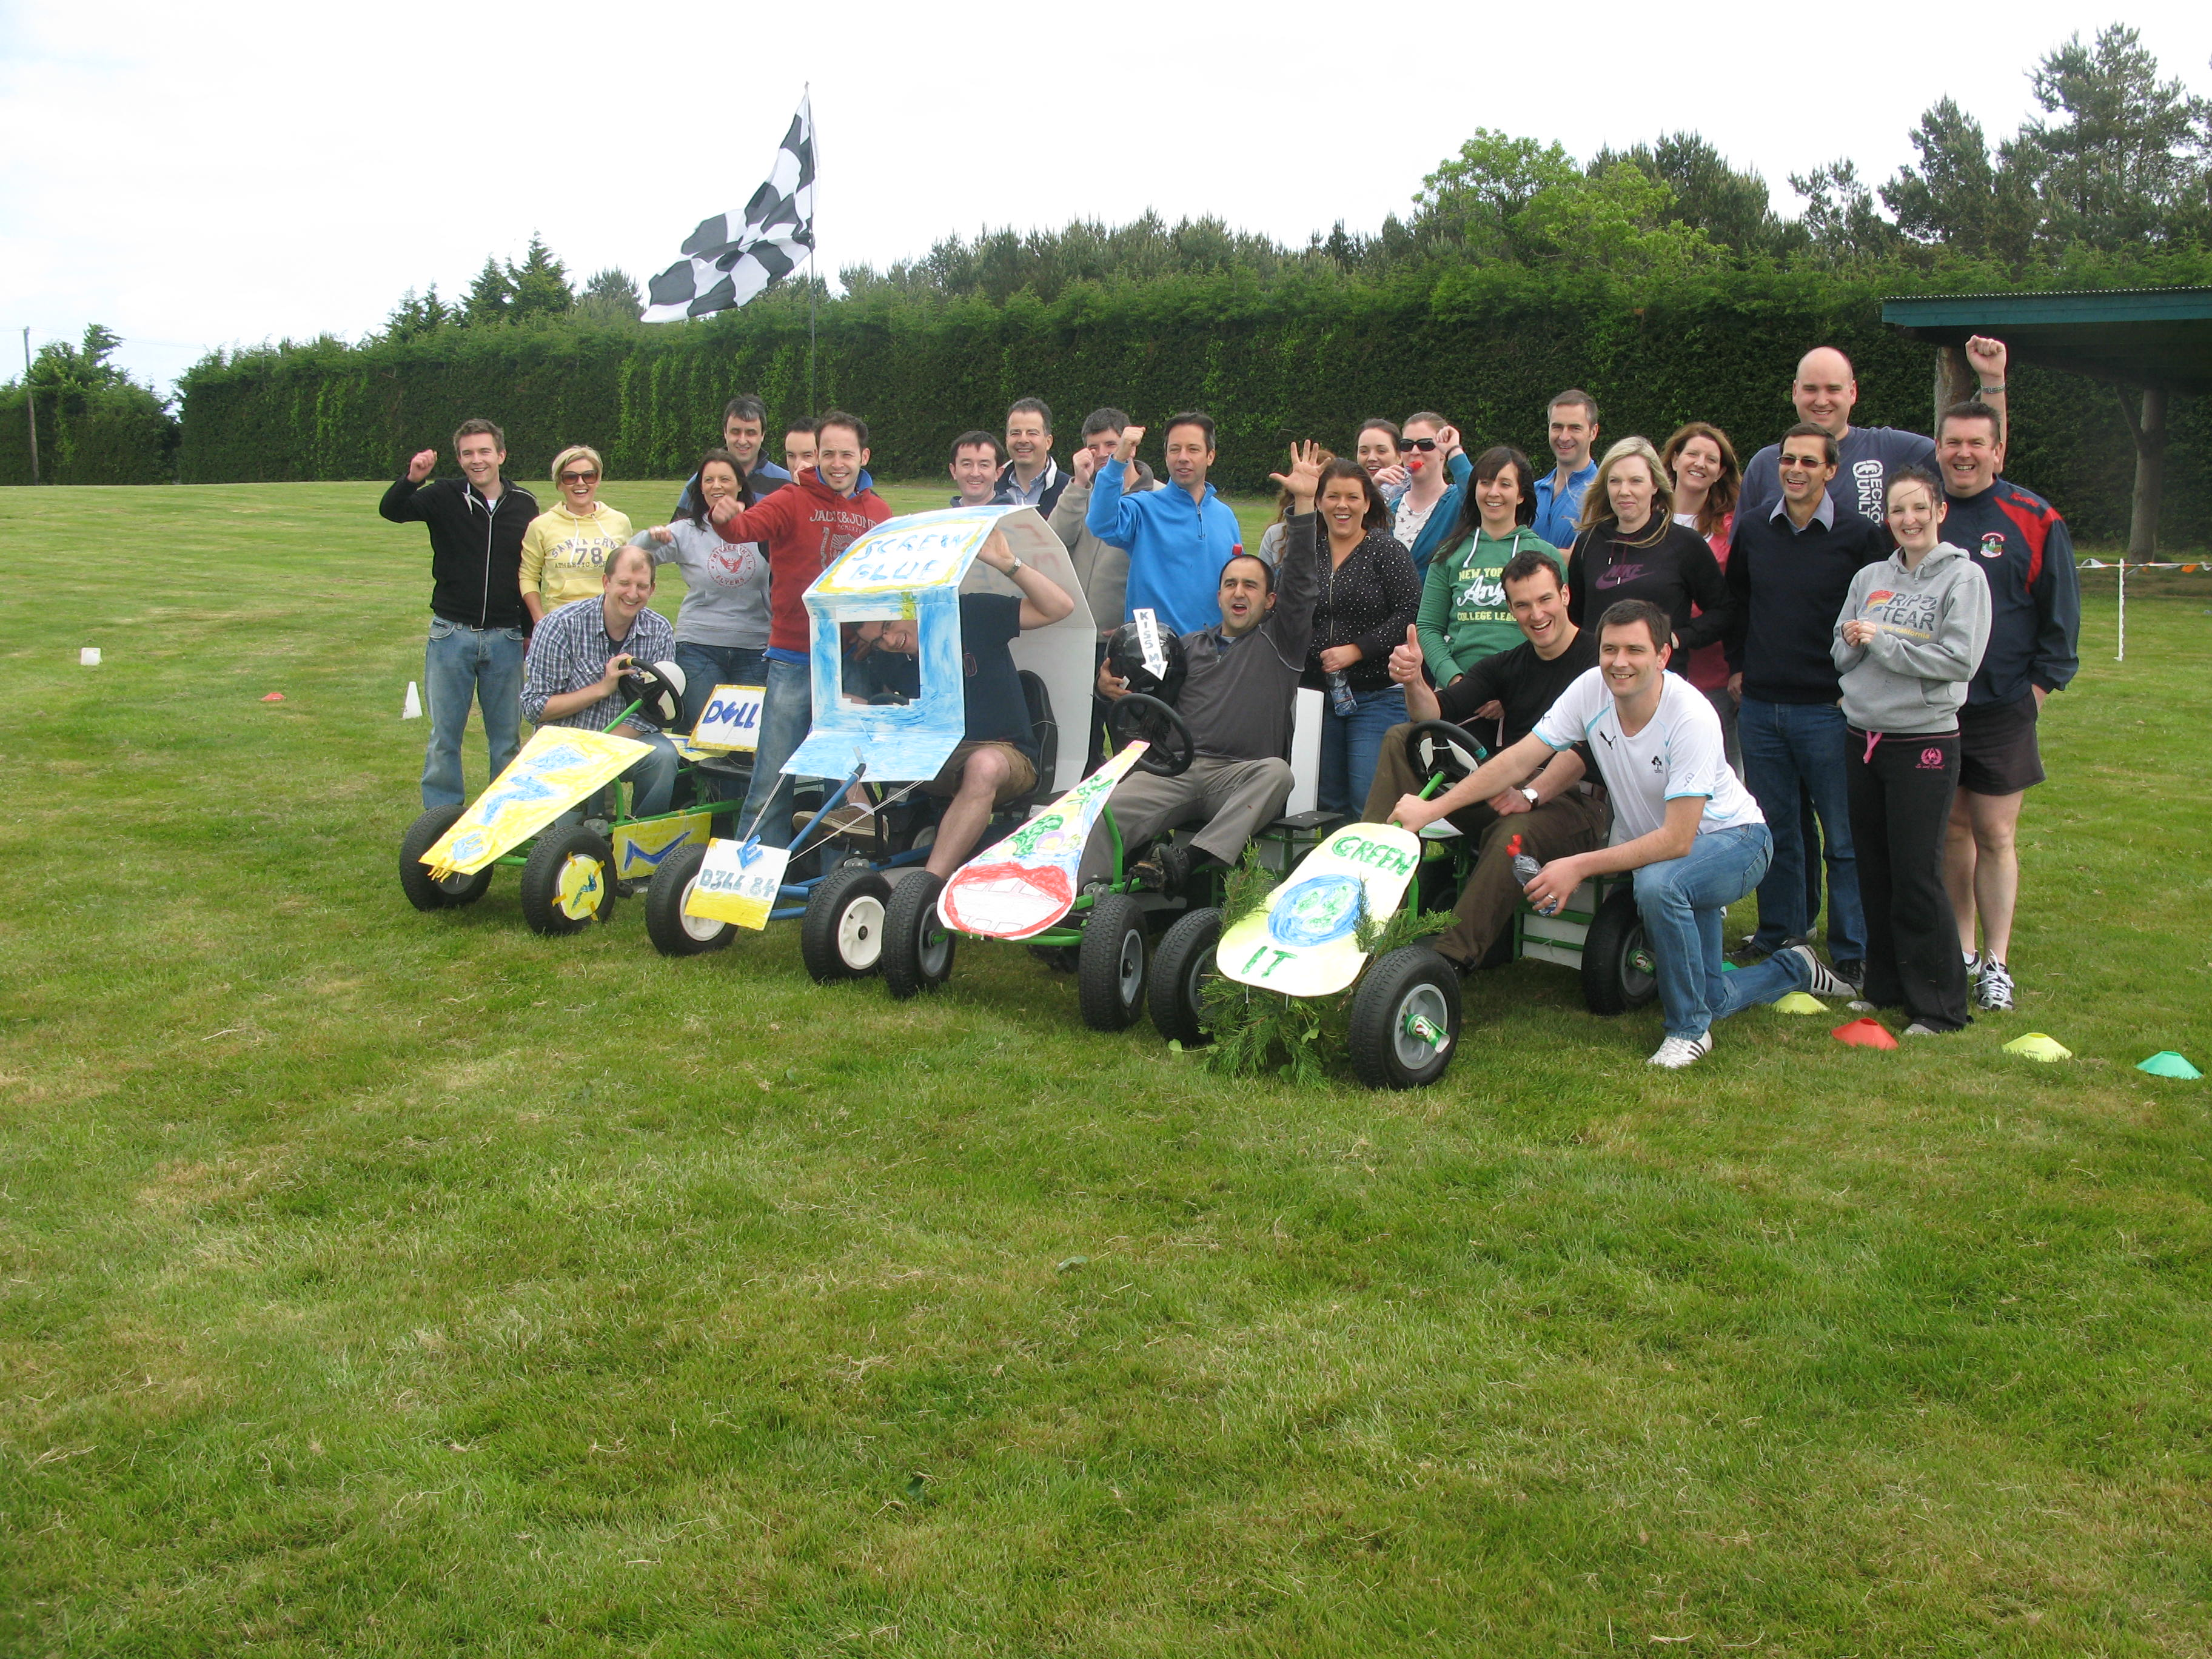 A group of delegates smile next to their newly constructed go karts